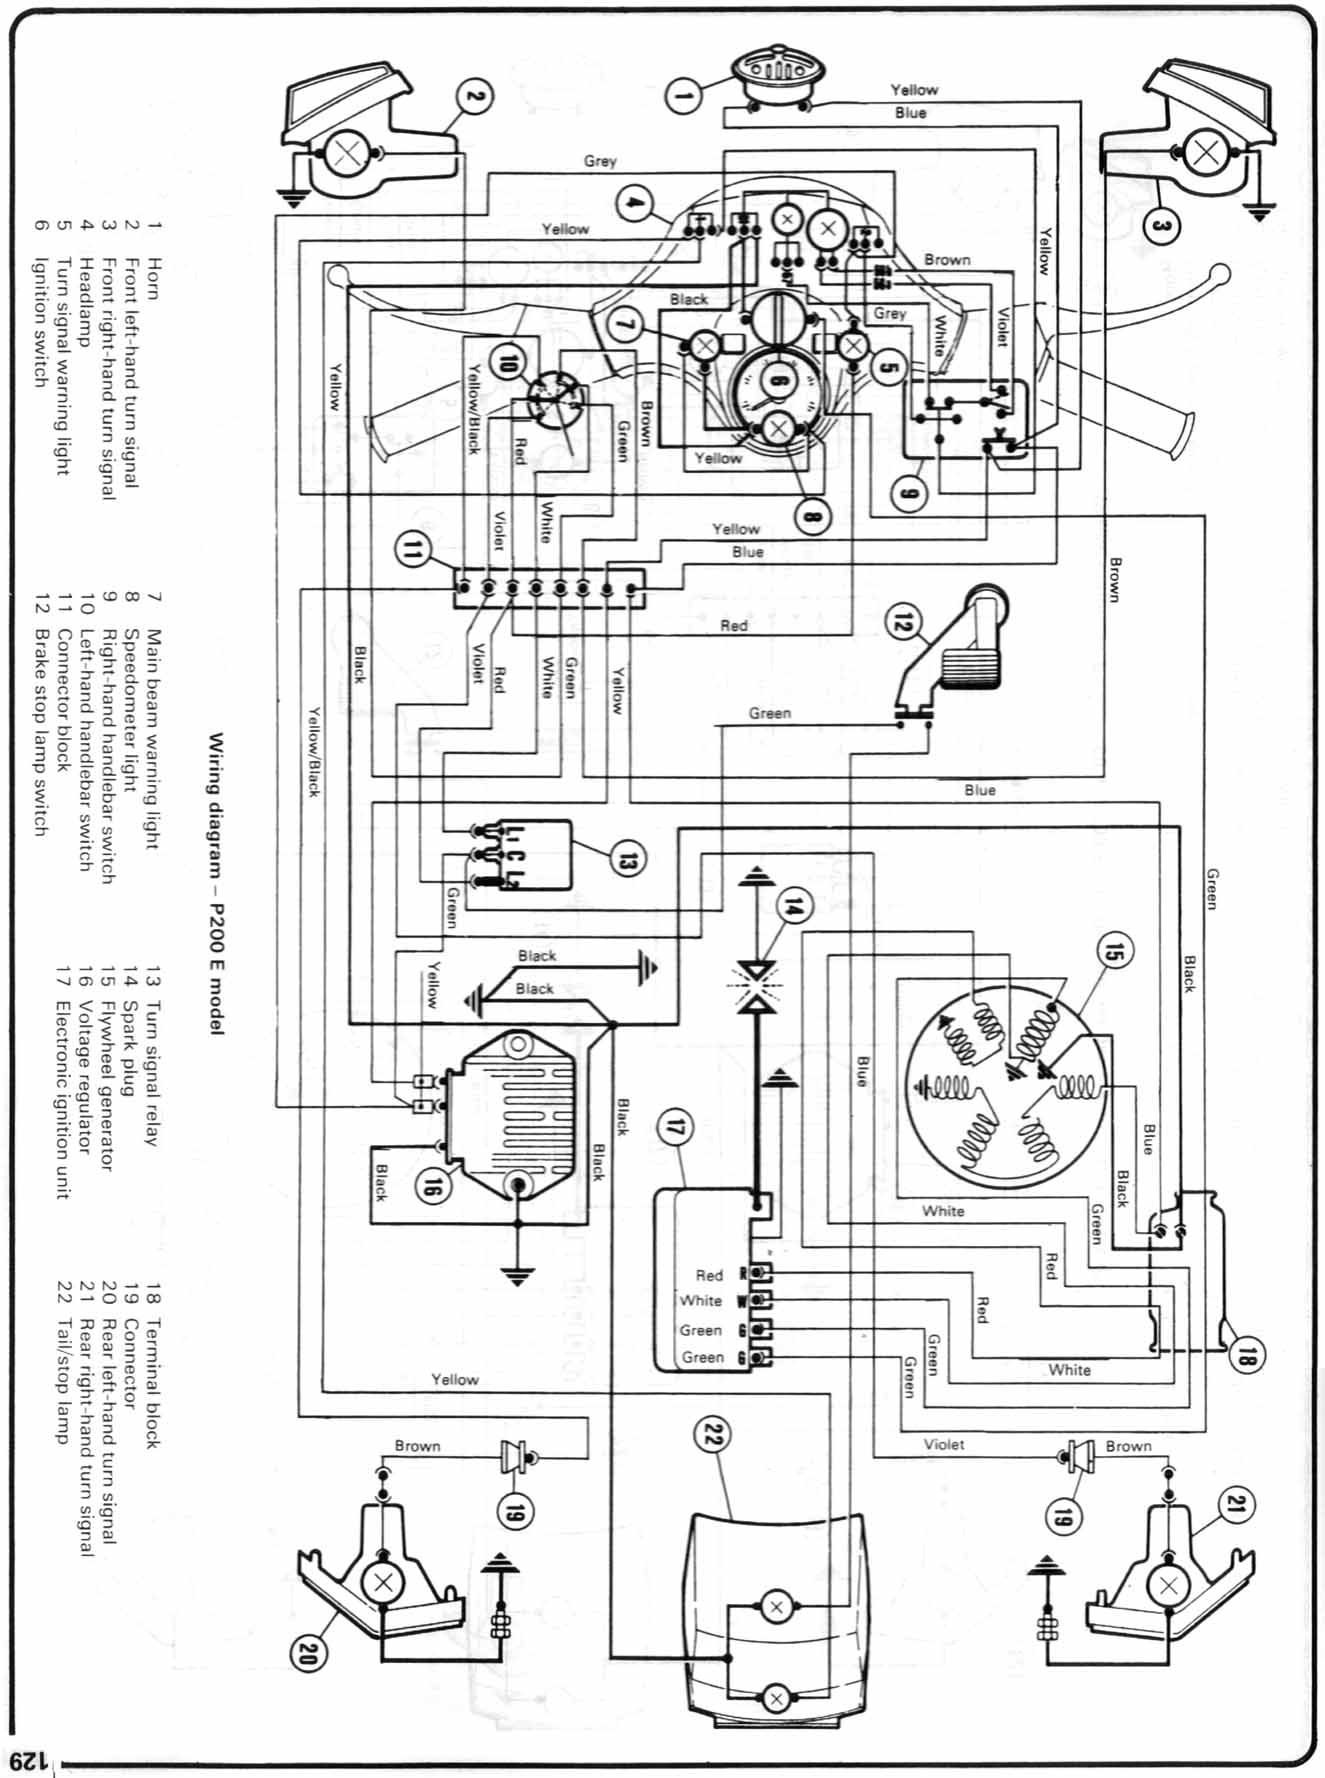 vespa p series maintenance repair rh vespamaintenance com Vespa 200L Wiring Diagram 05 Vespa 200L Wiring Diagram 05